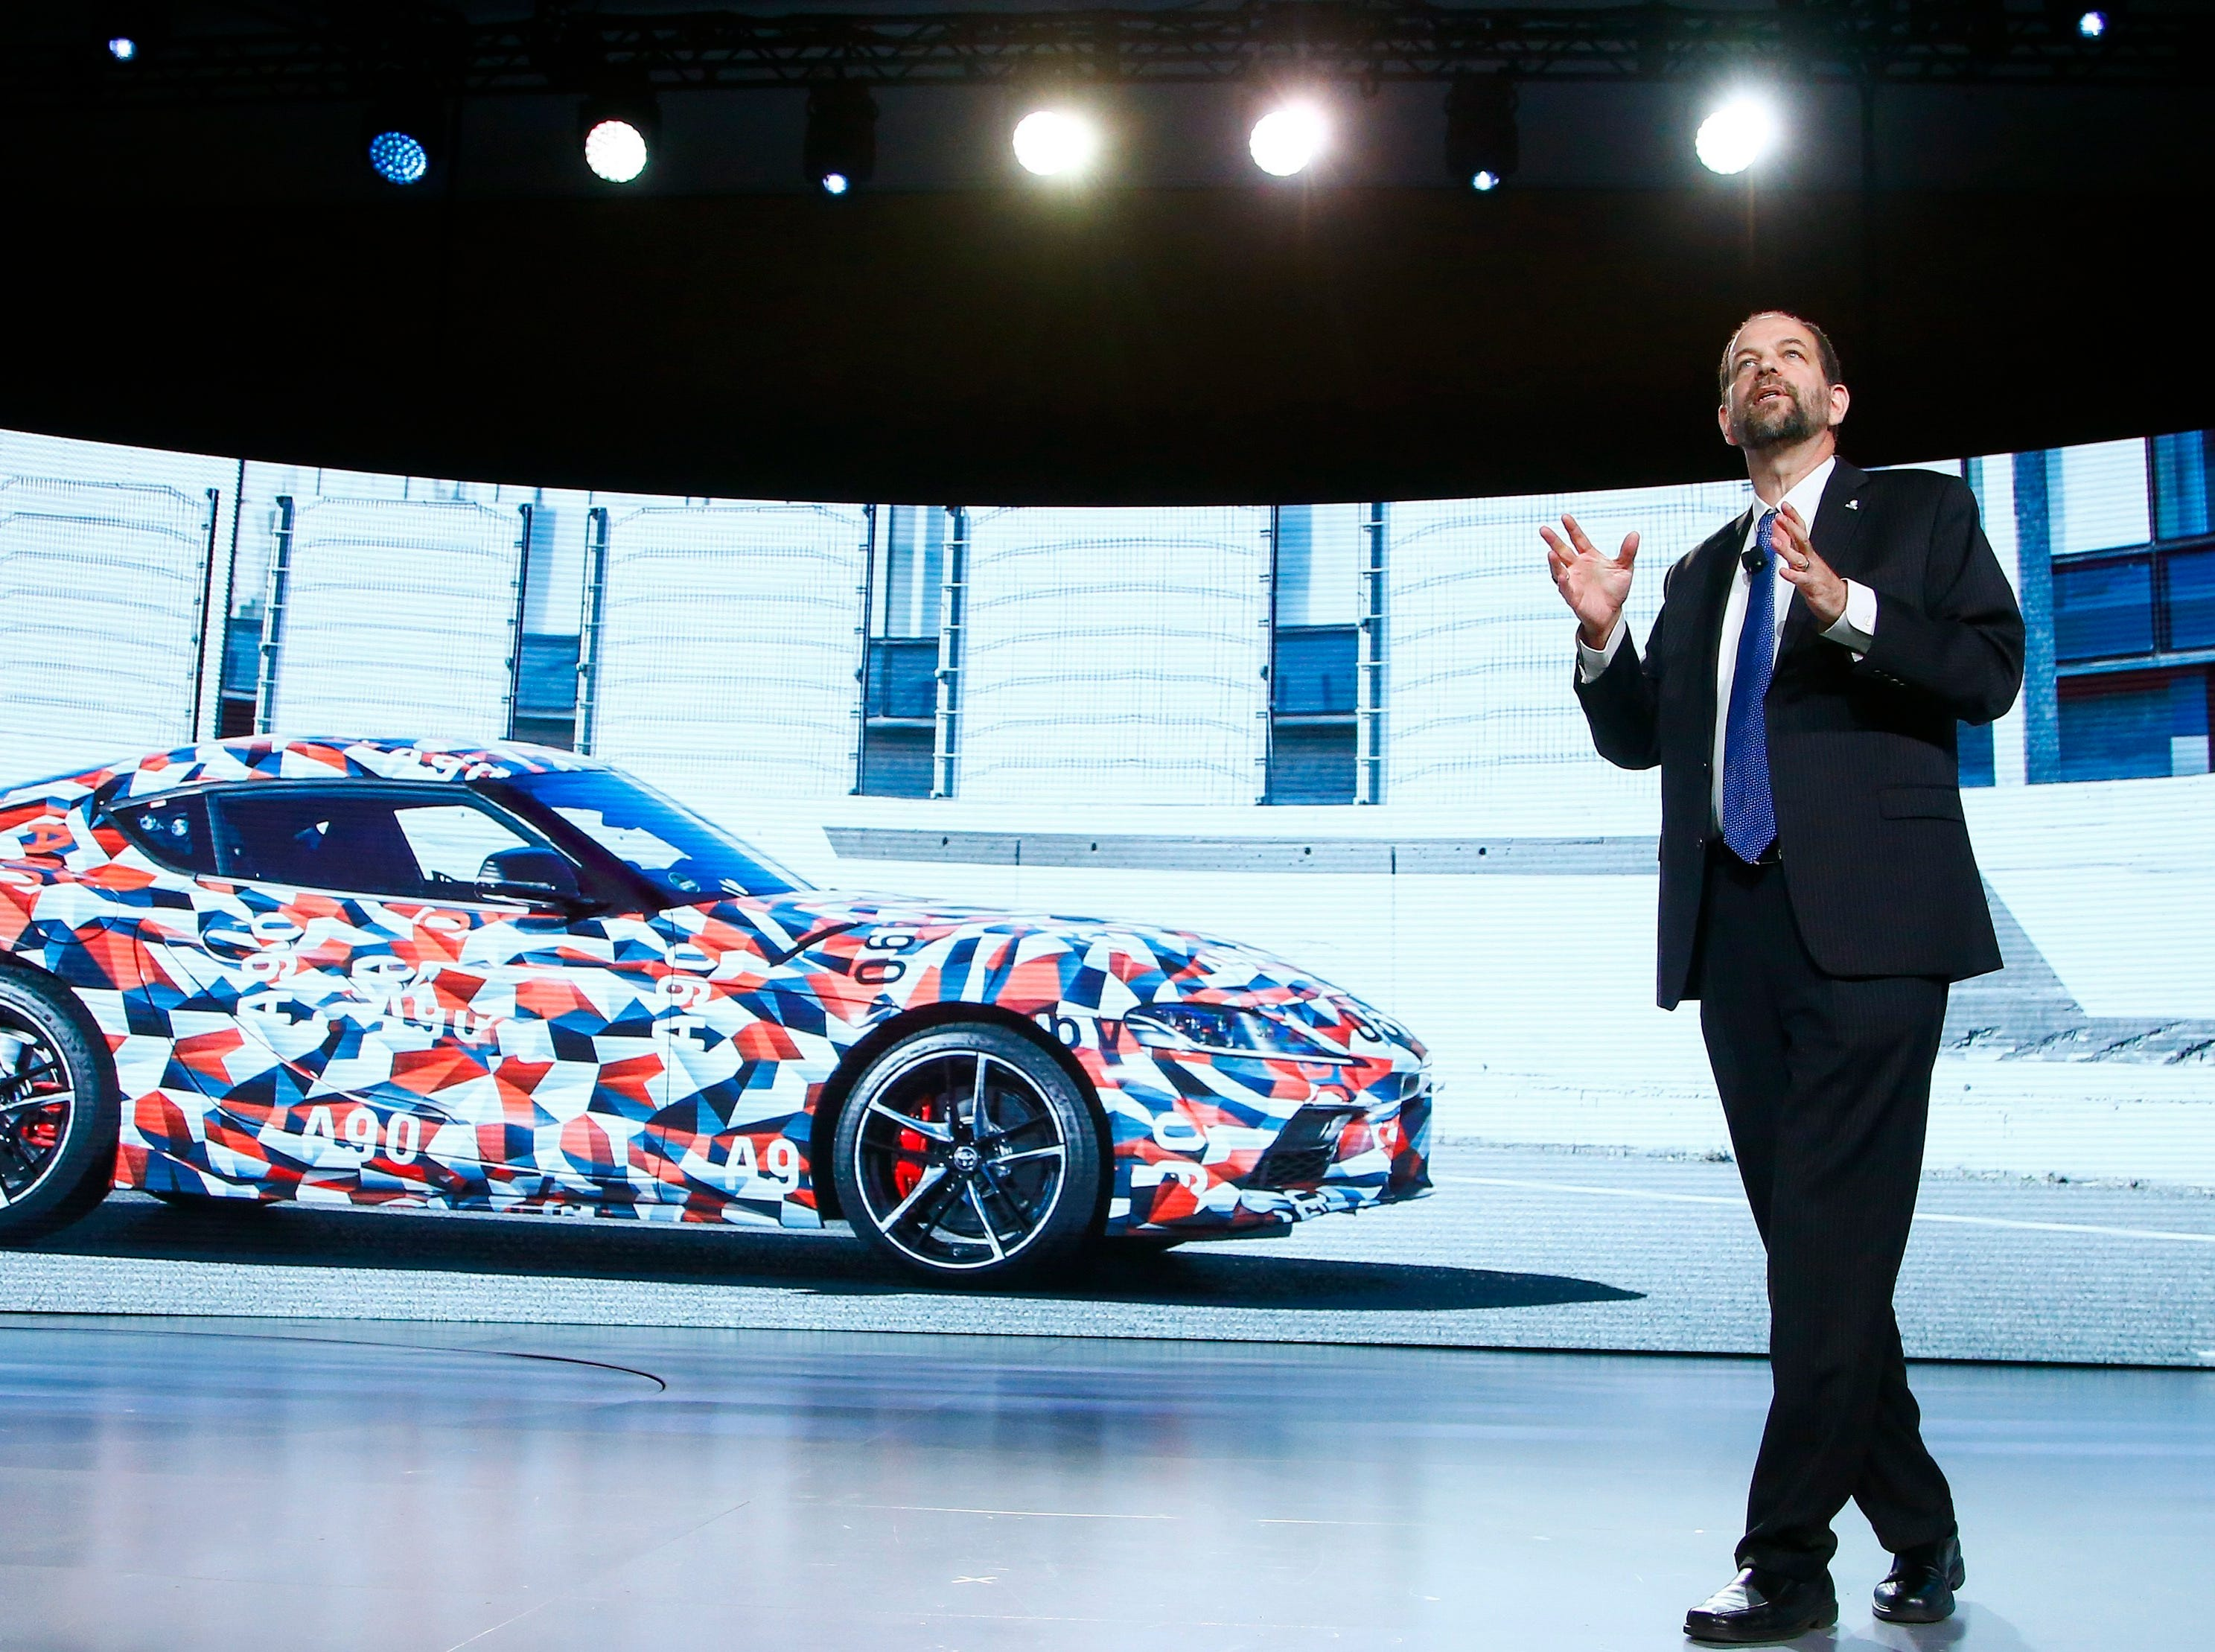 Gill Pratt, CEO of the Toyota Research Institute, talks about the new Toyota Supra at the Toyota news conference at CES International on Monday, Jan. 7, 2019, in Las Vegas.